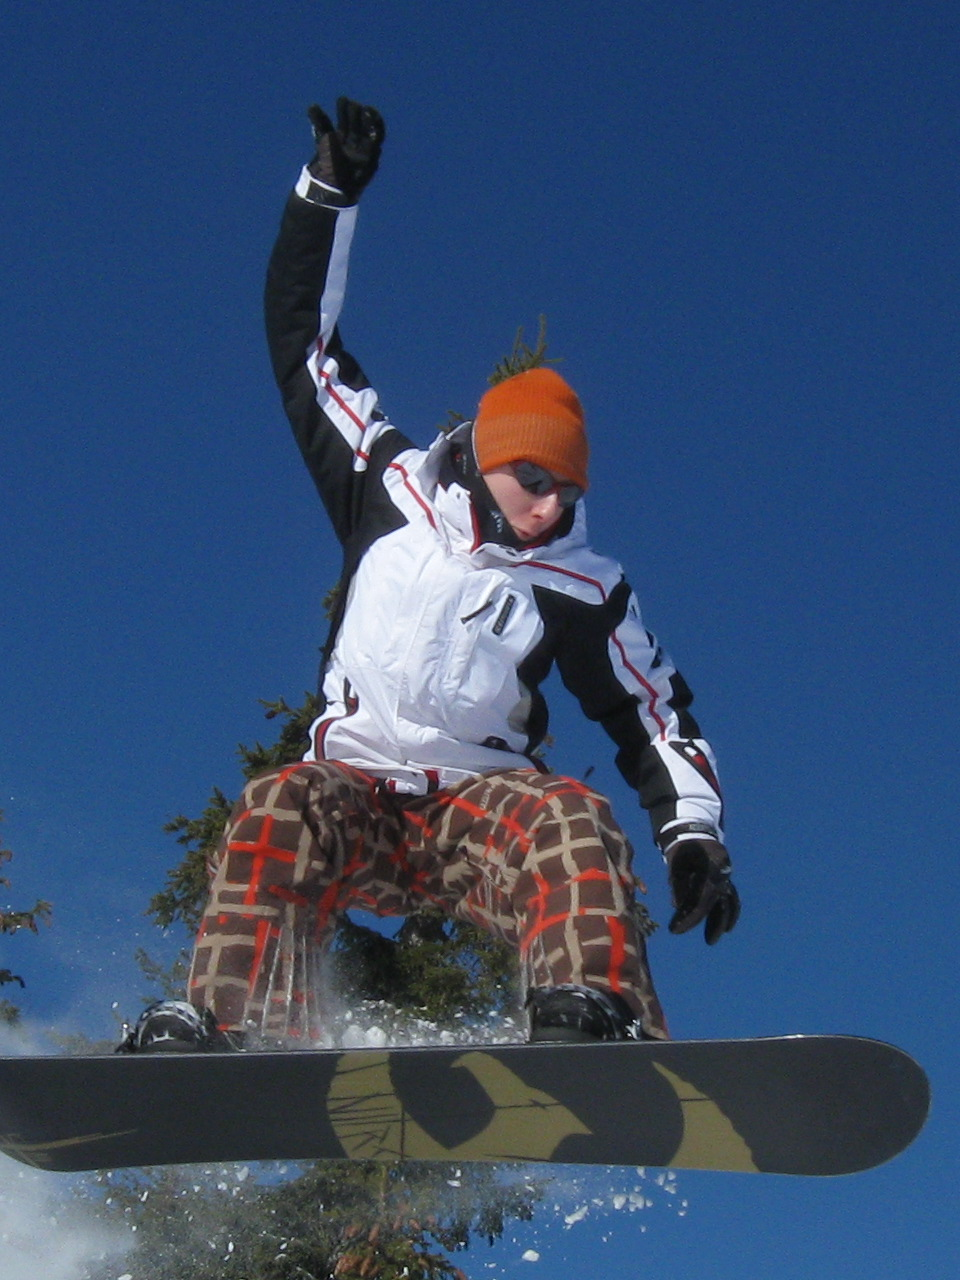 My snowboarding picture